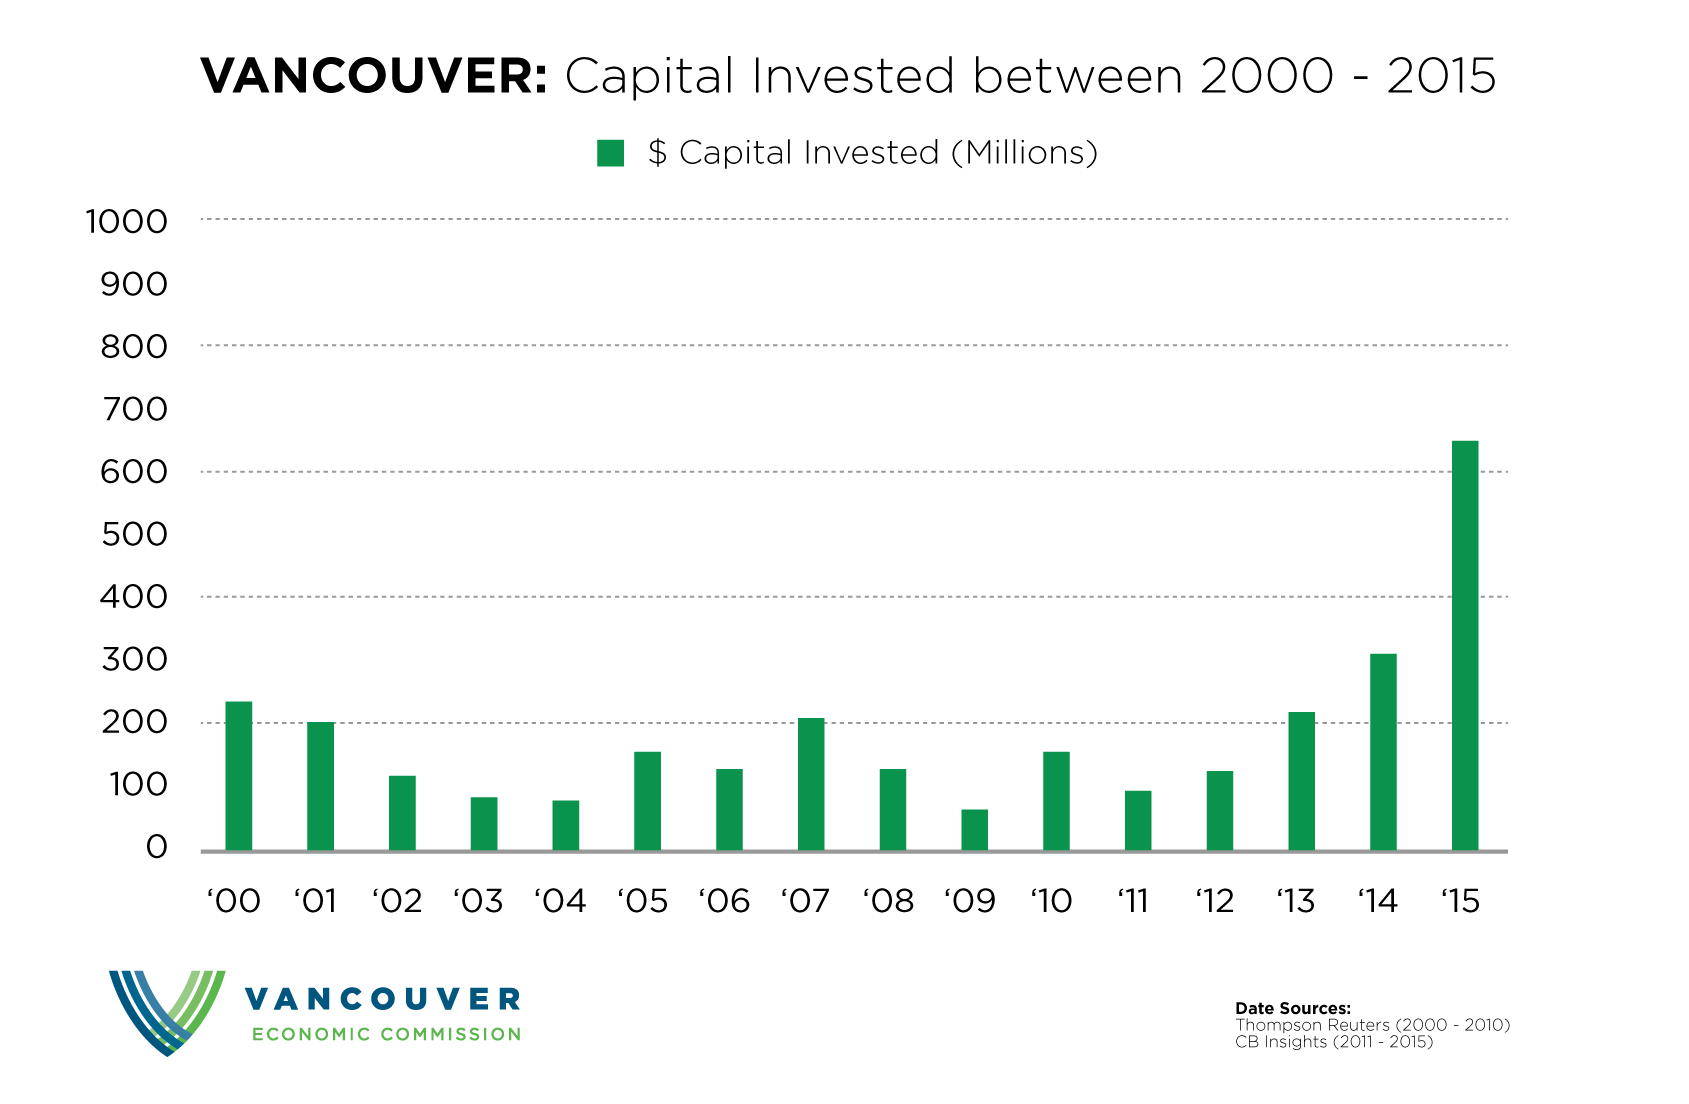 Capital invested in Vancouver between 2000 - 2015. Presented by the Vancouver Economic Commission. Data Sources: Thompson Reuters & CB Insights.